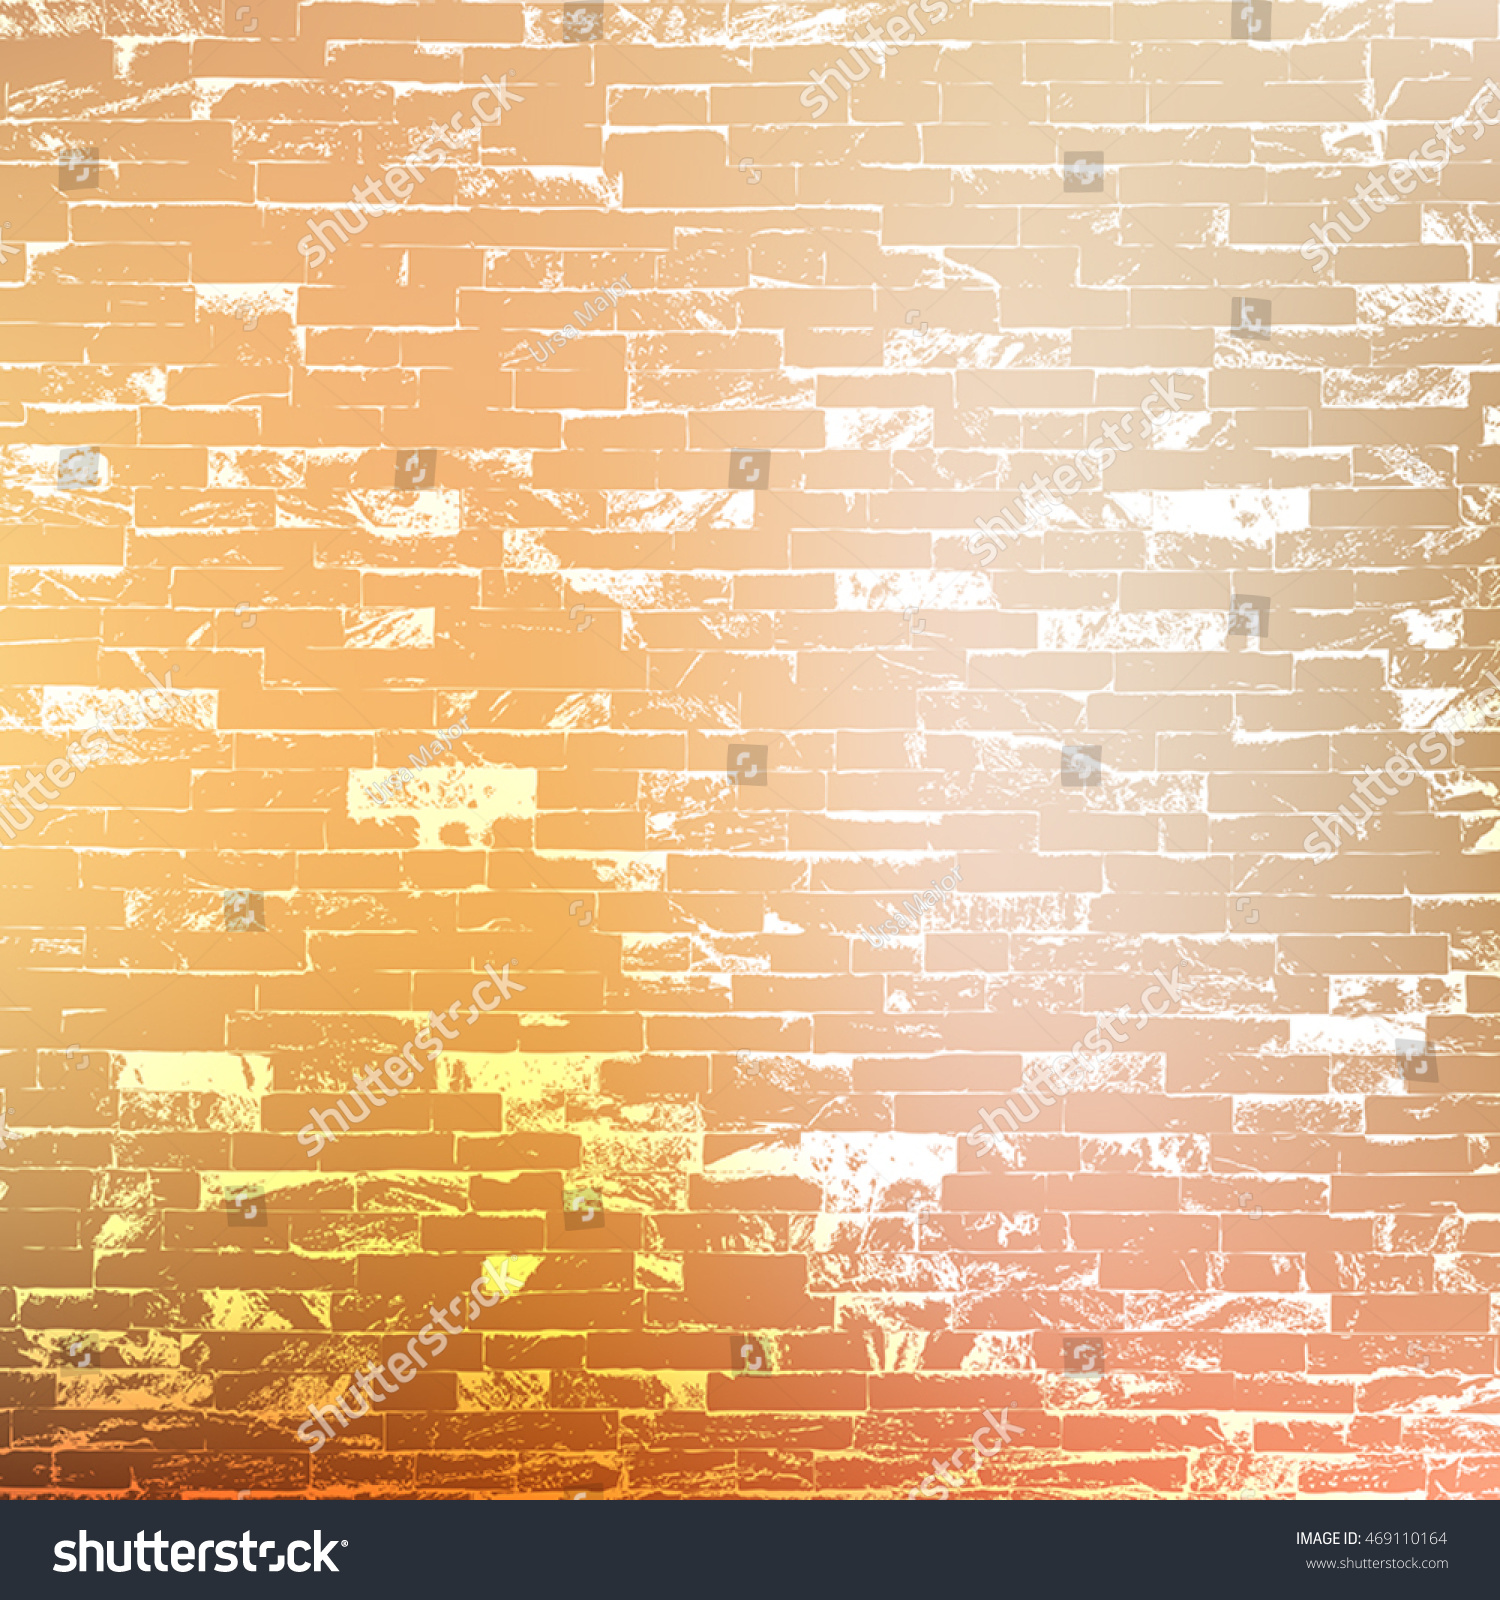 Decorative Stone Wall Overlay Texture Your Stock Vector 469110164 ...